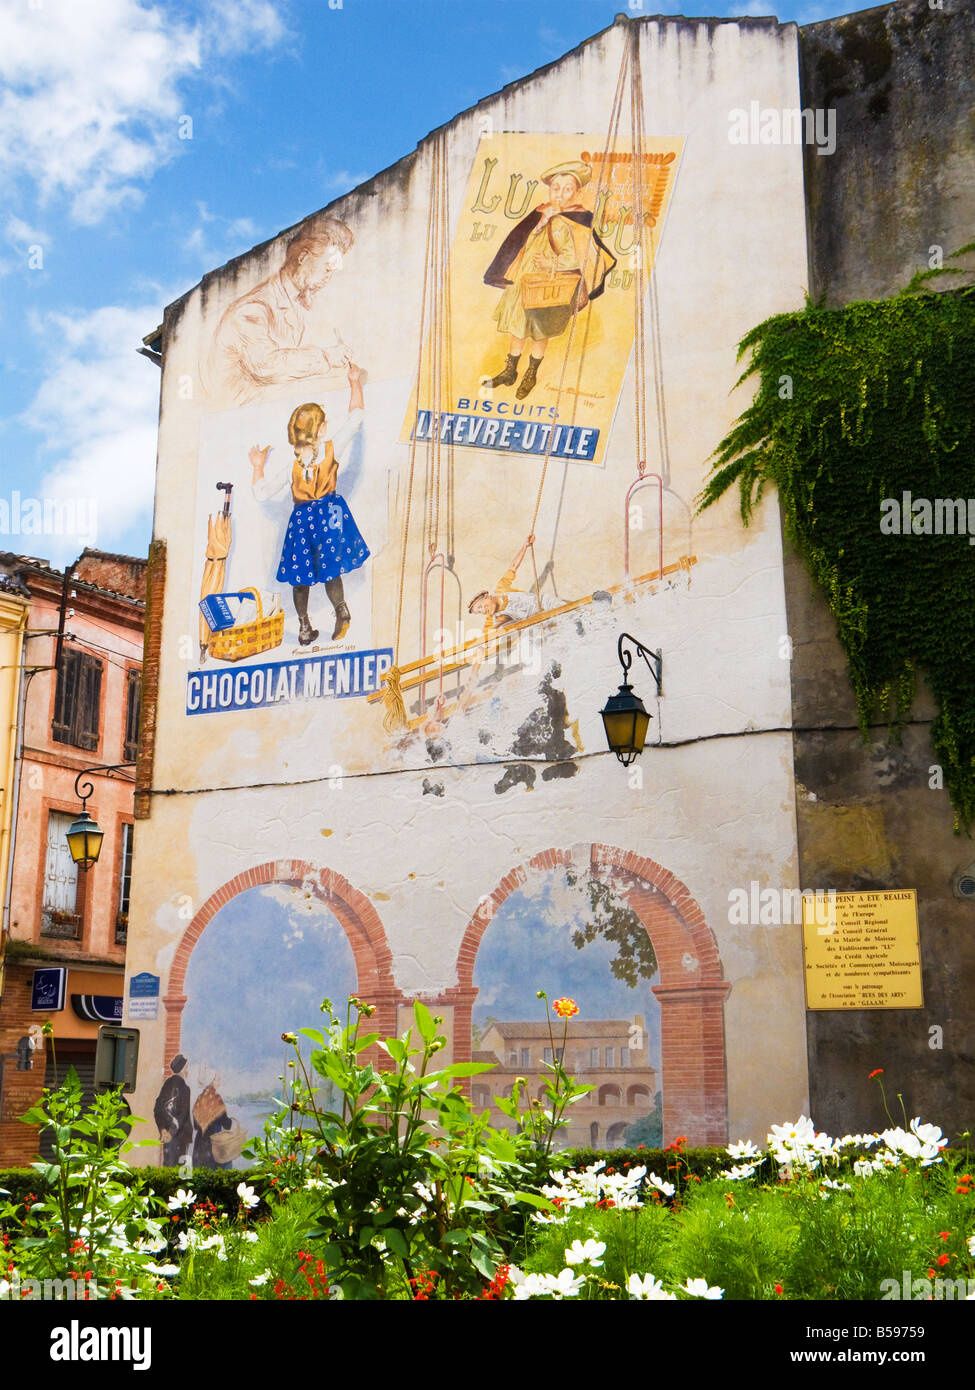 Vintage French advertising posters painted as a street art mural in Moissac, Tarn et Garonne, France, Europe - Stock Image